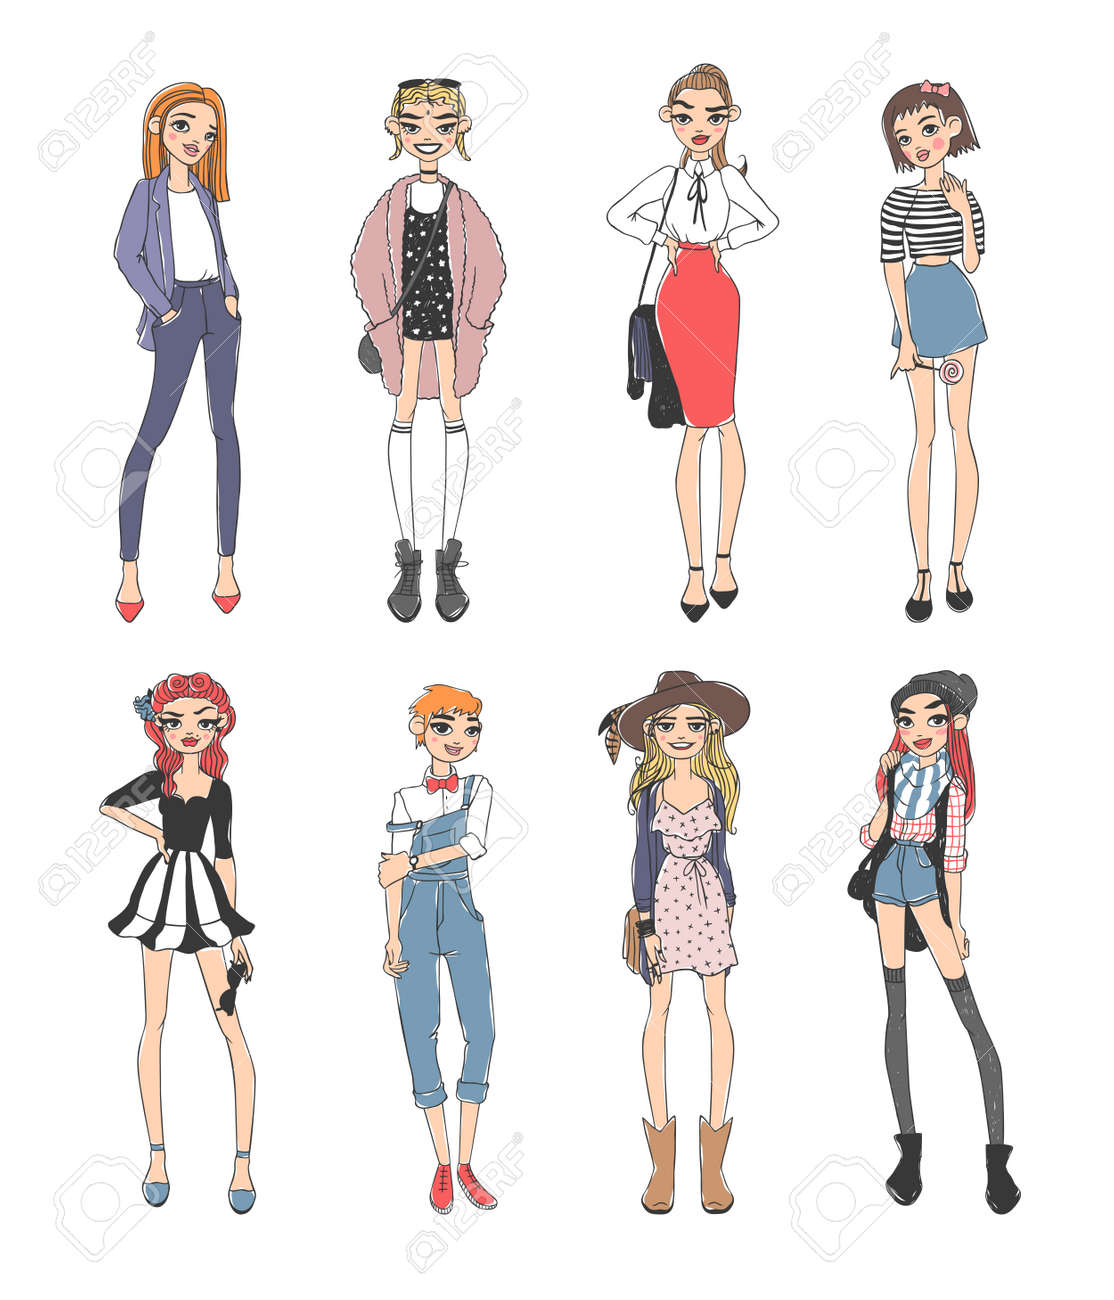 Beautiful Young Fashion Girls Dressed Casual Sketch Glamour Stylish Royalty Free Cliparts Vectors And Stock Illustration Image 54067701